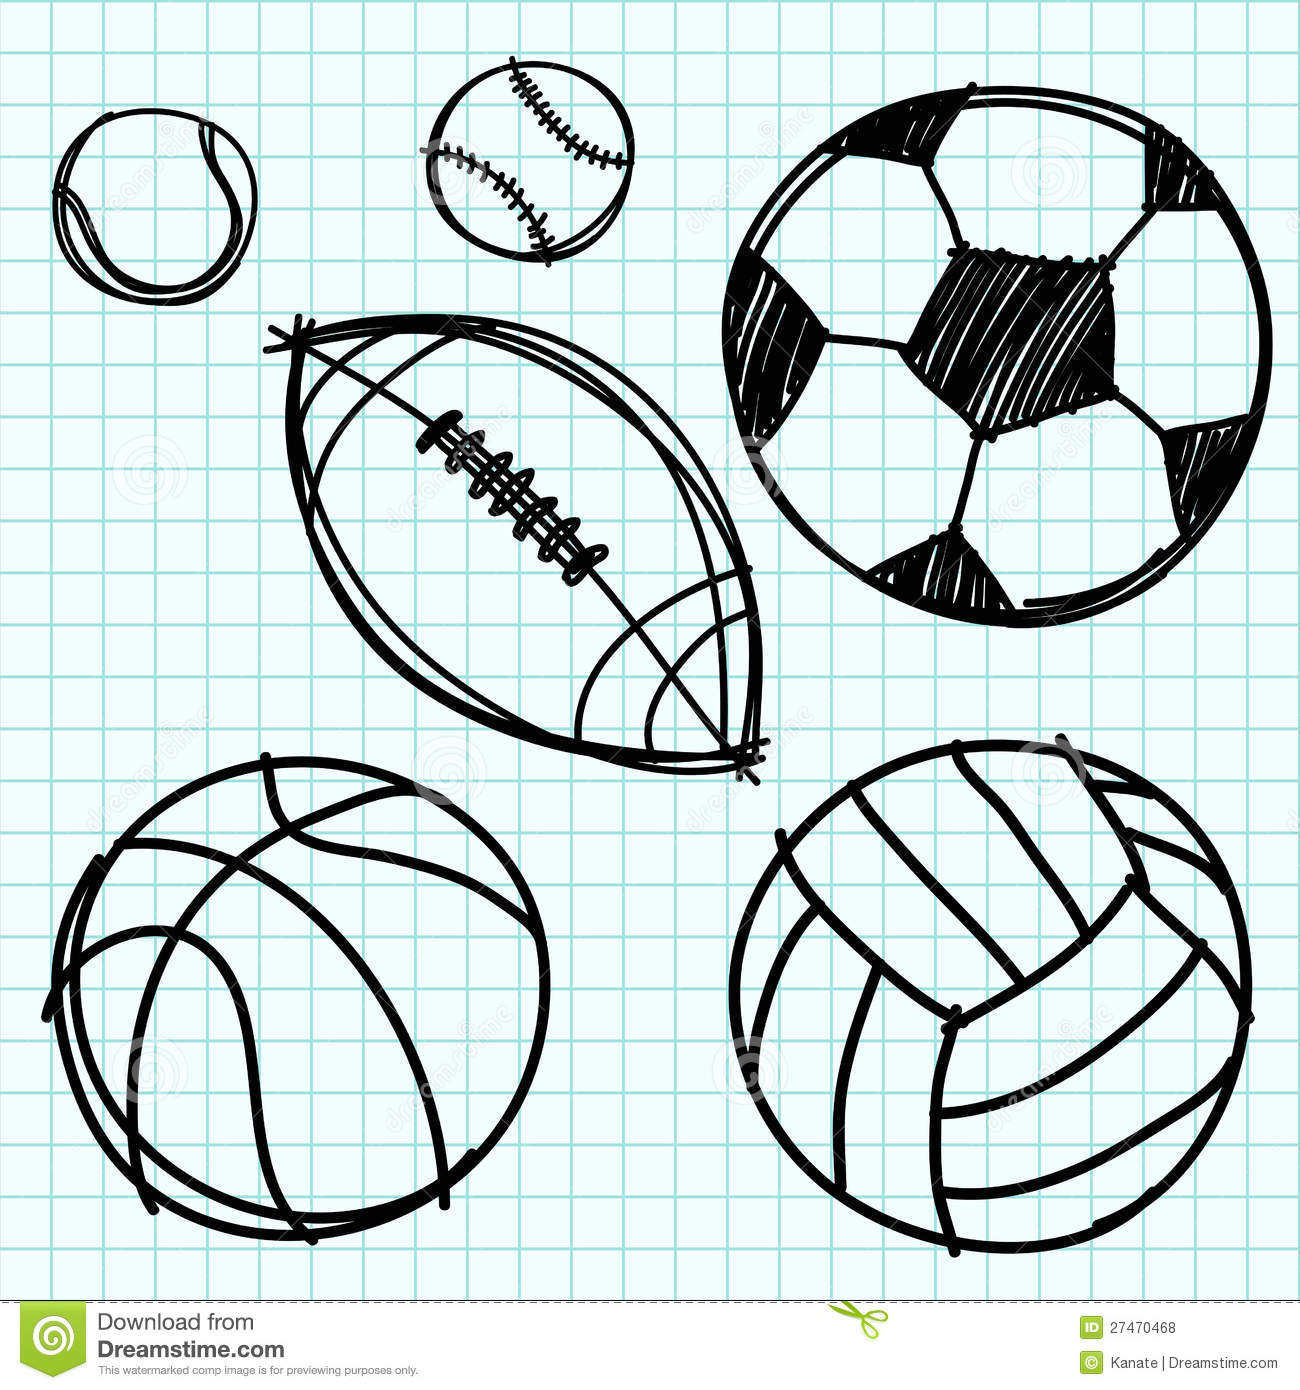 Drawing Line Graphs By Hand : Sport ball hand draw on graph paper stock vector image